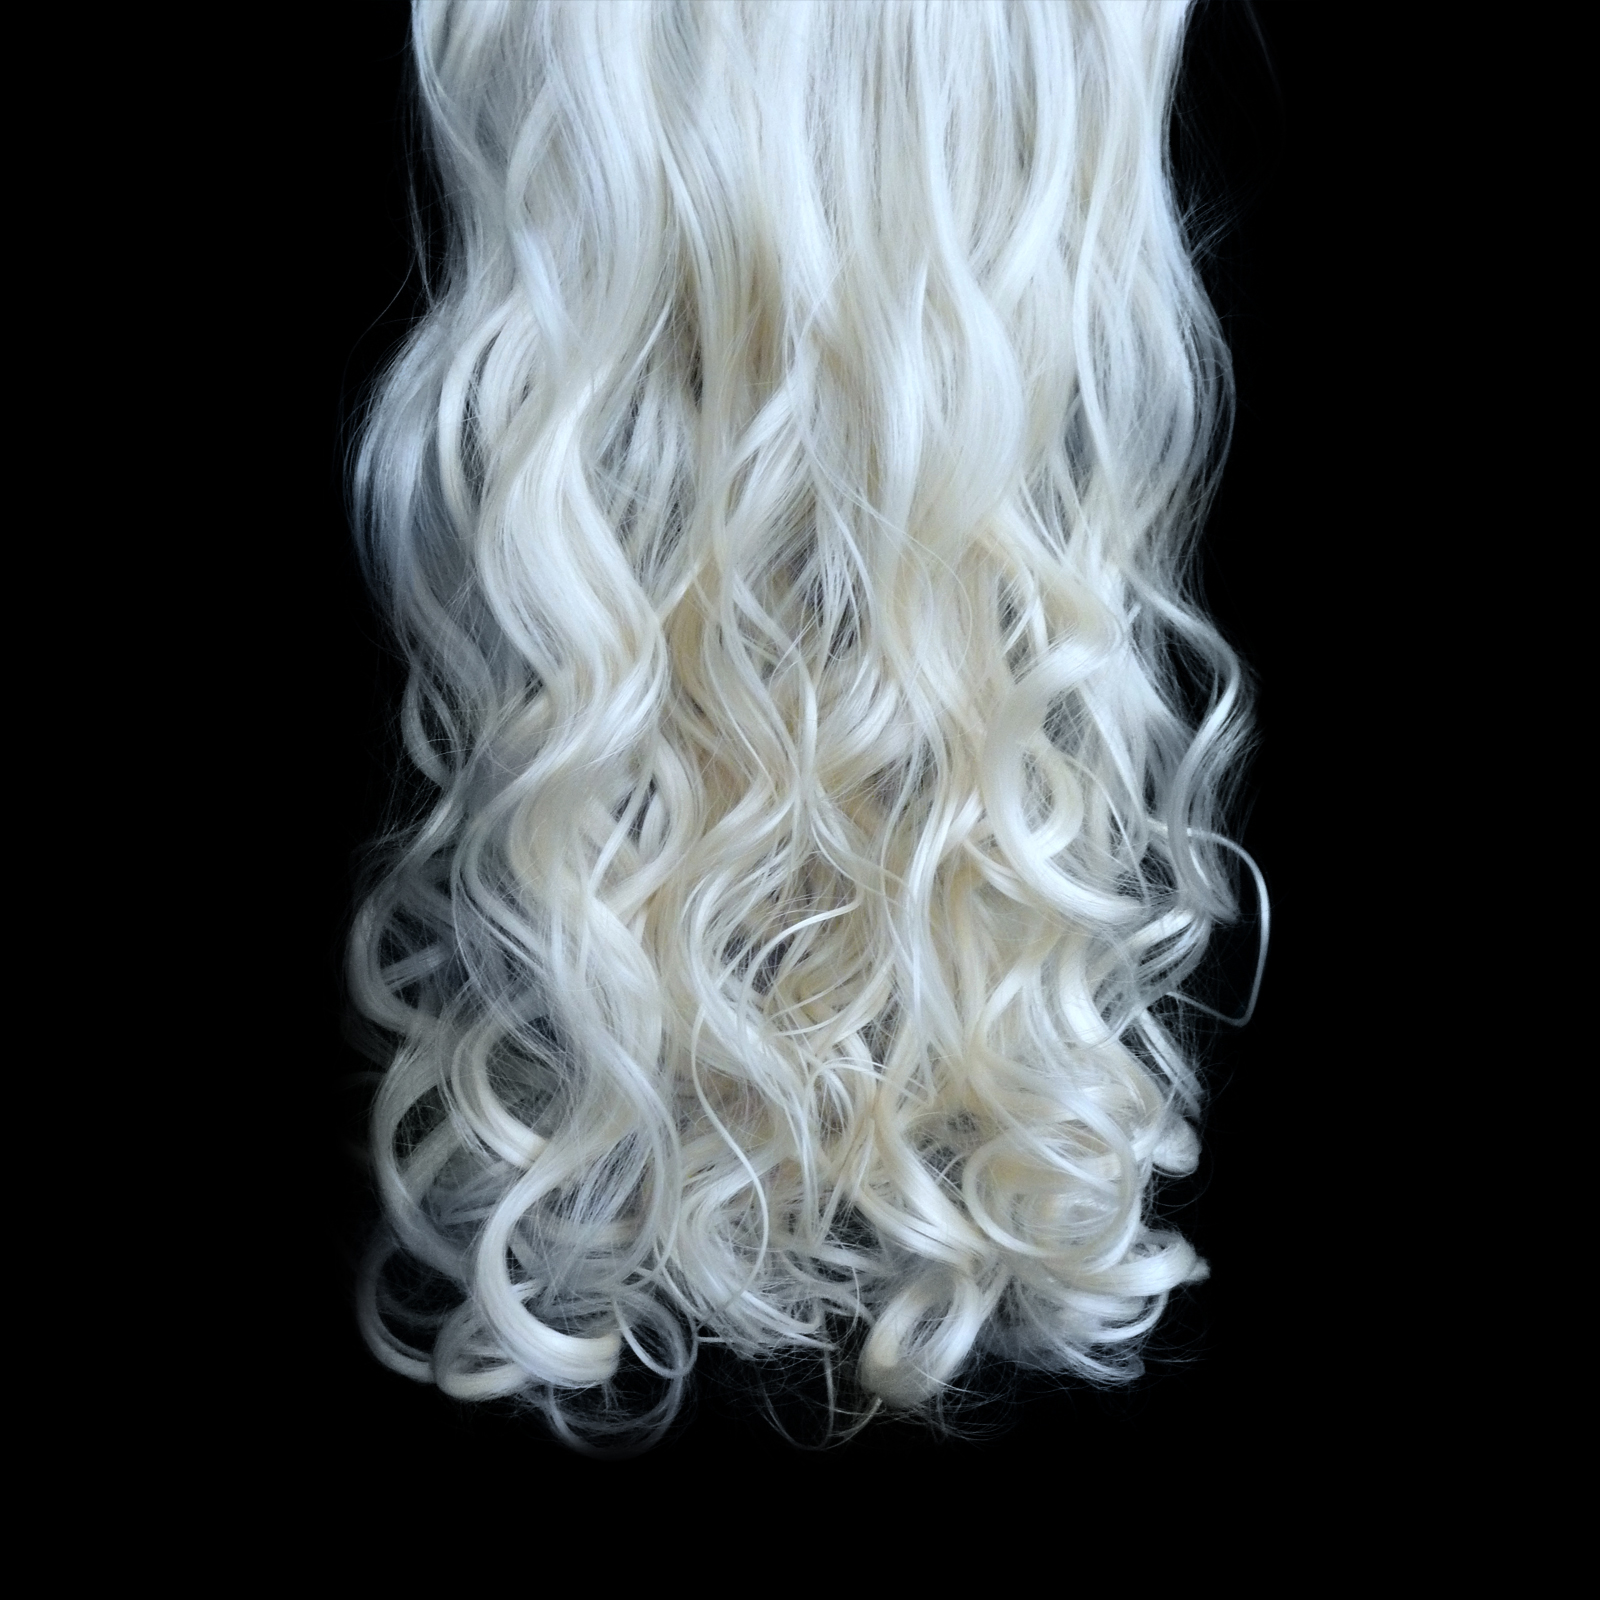 20 22 Quot Clip In Hair Extensions Curly Platinum Blonde 16